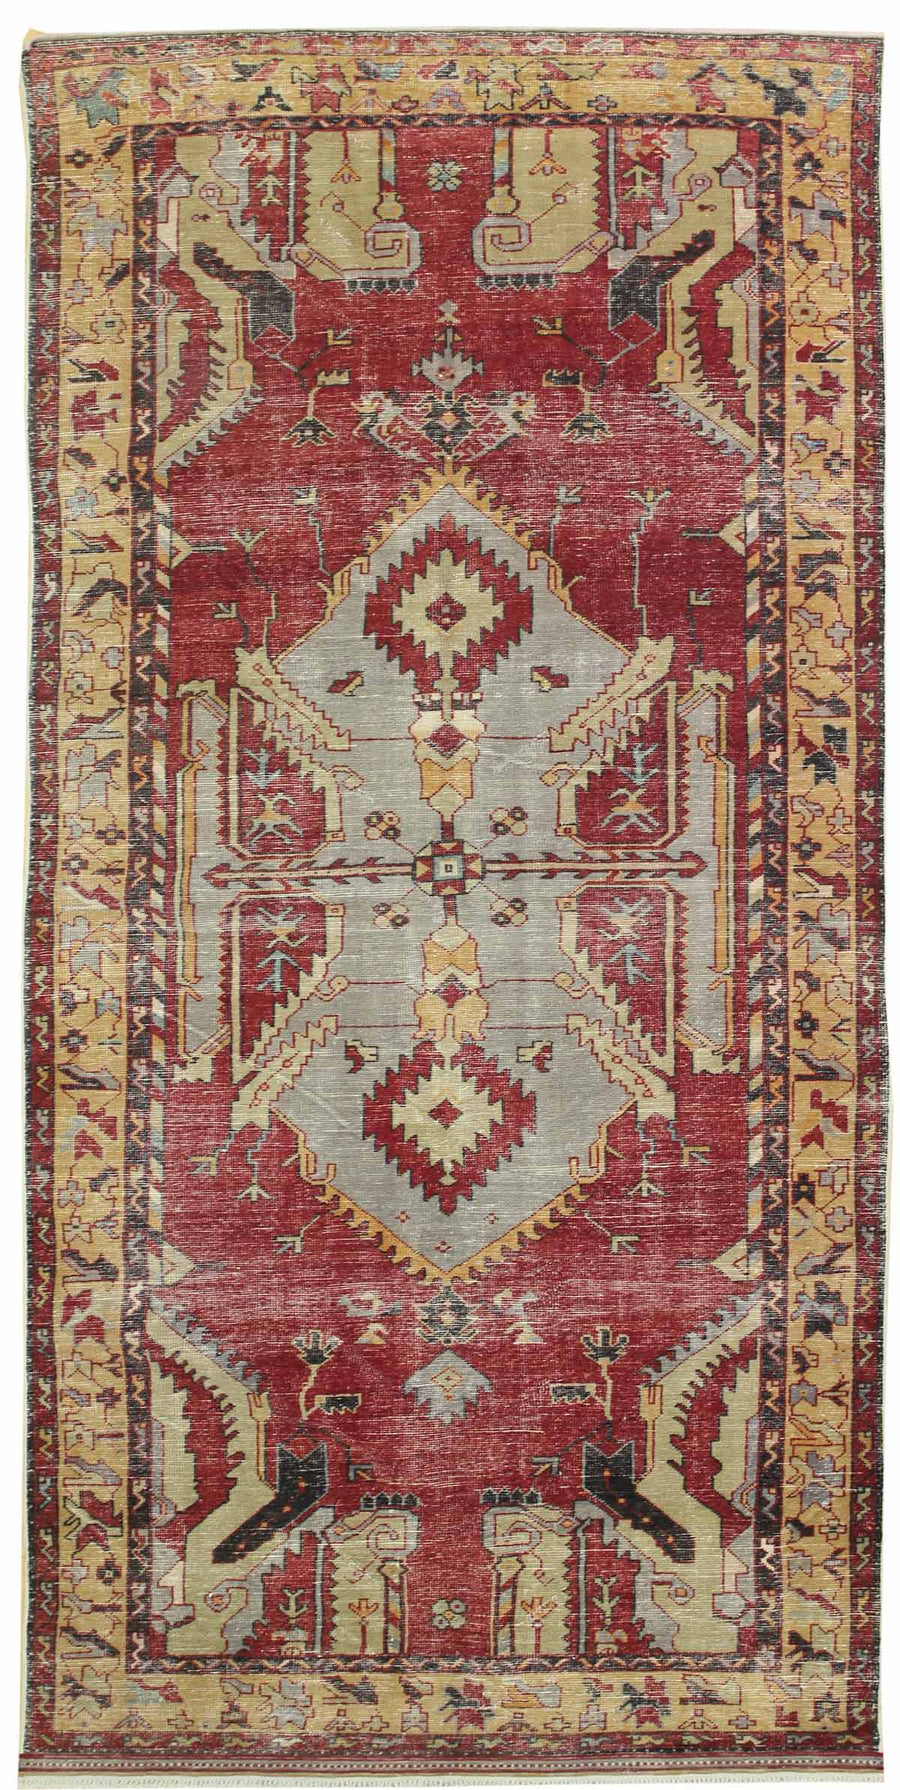 DRAGON HANDKNOTTED RUG, J48811